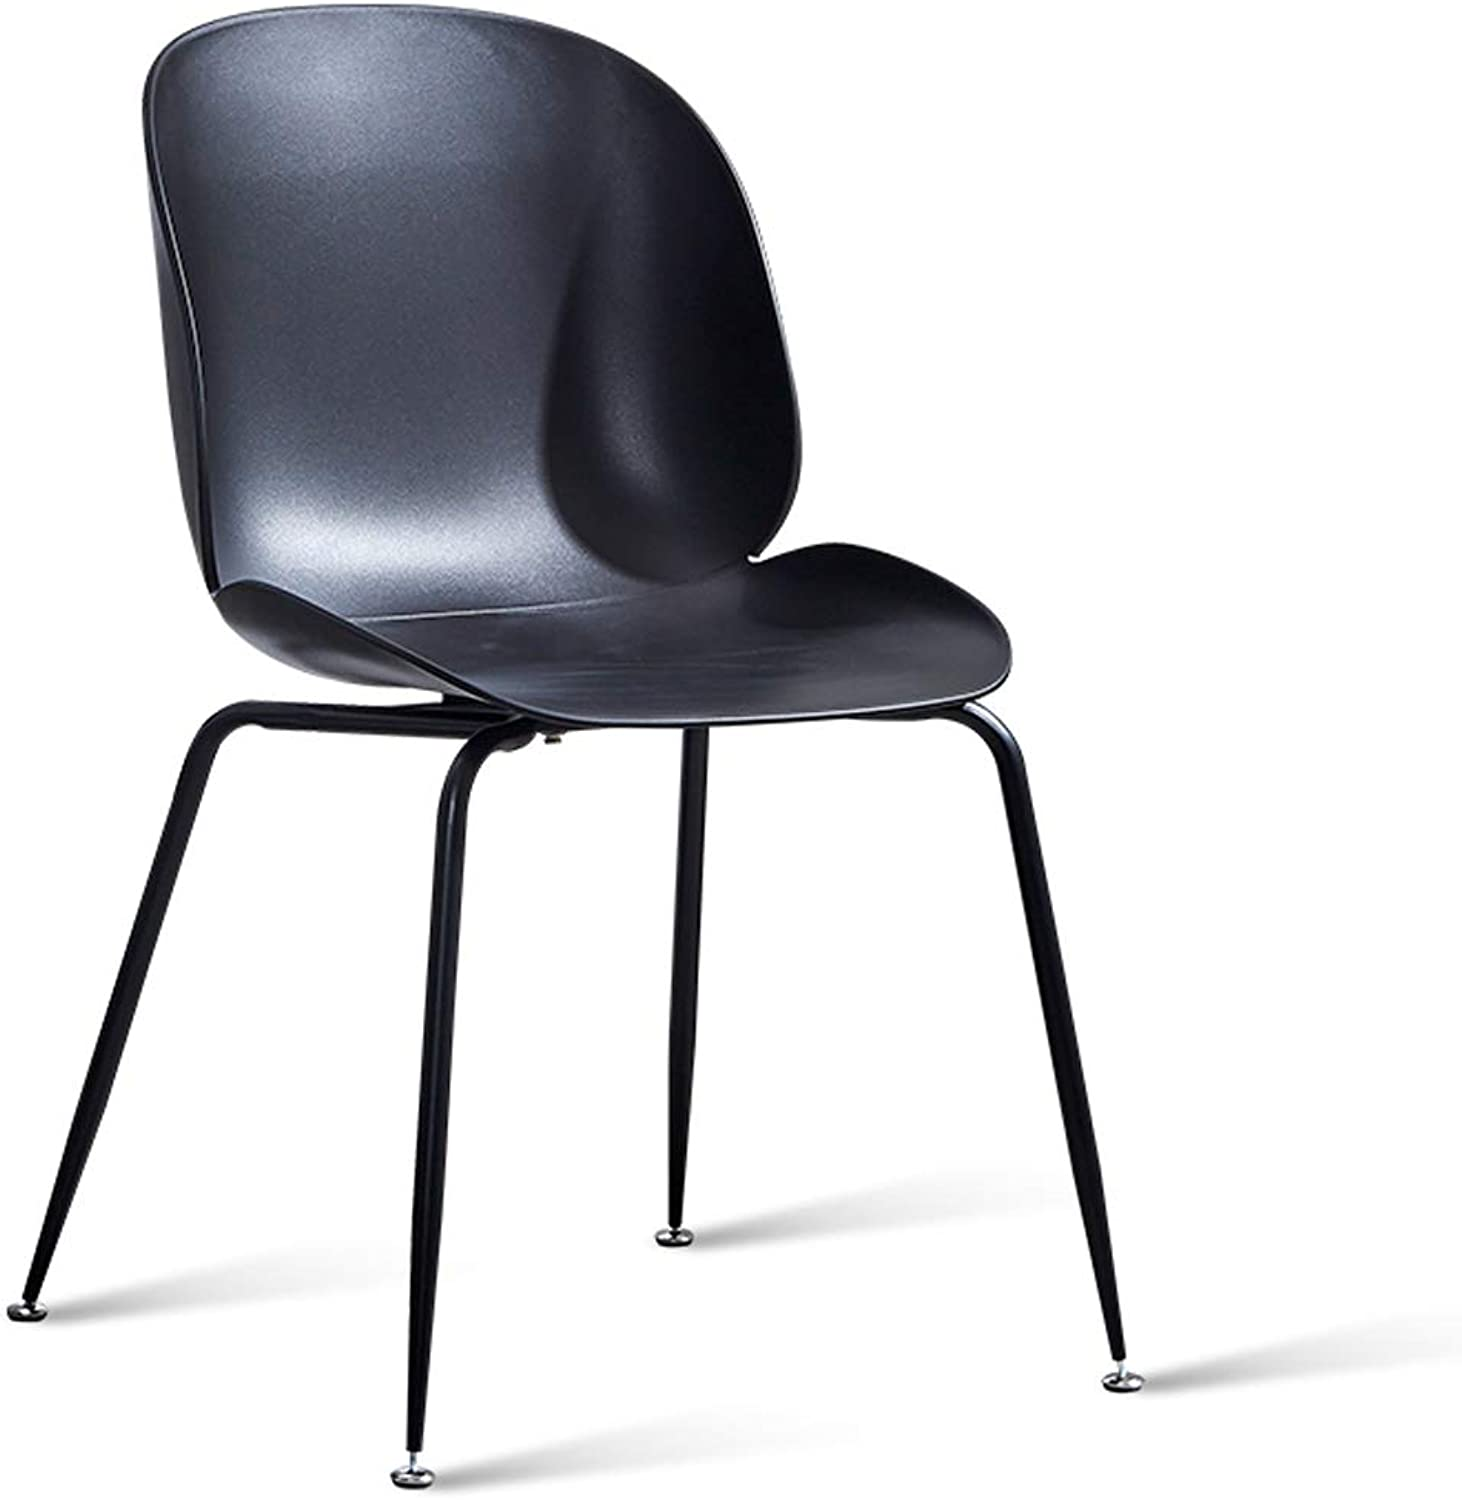 LRW Nordic Chairs, Modern Dining Chairs, Home Desks, Chairs, Leisure Backrest Stools, Black